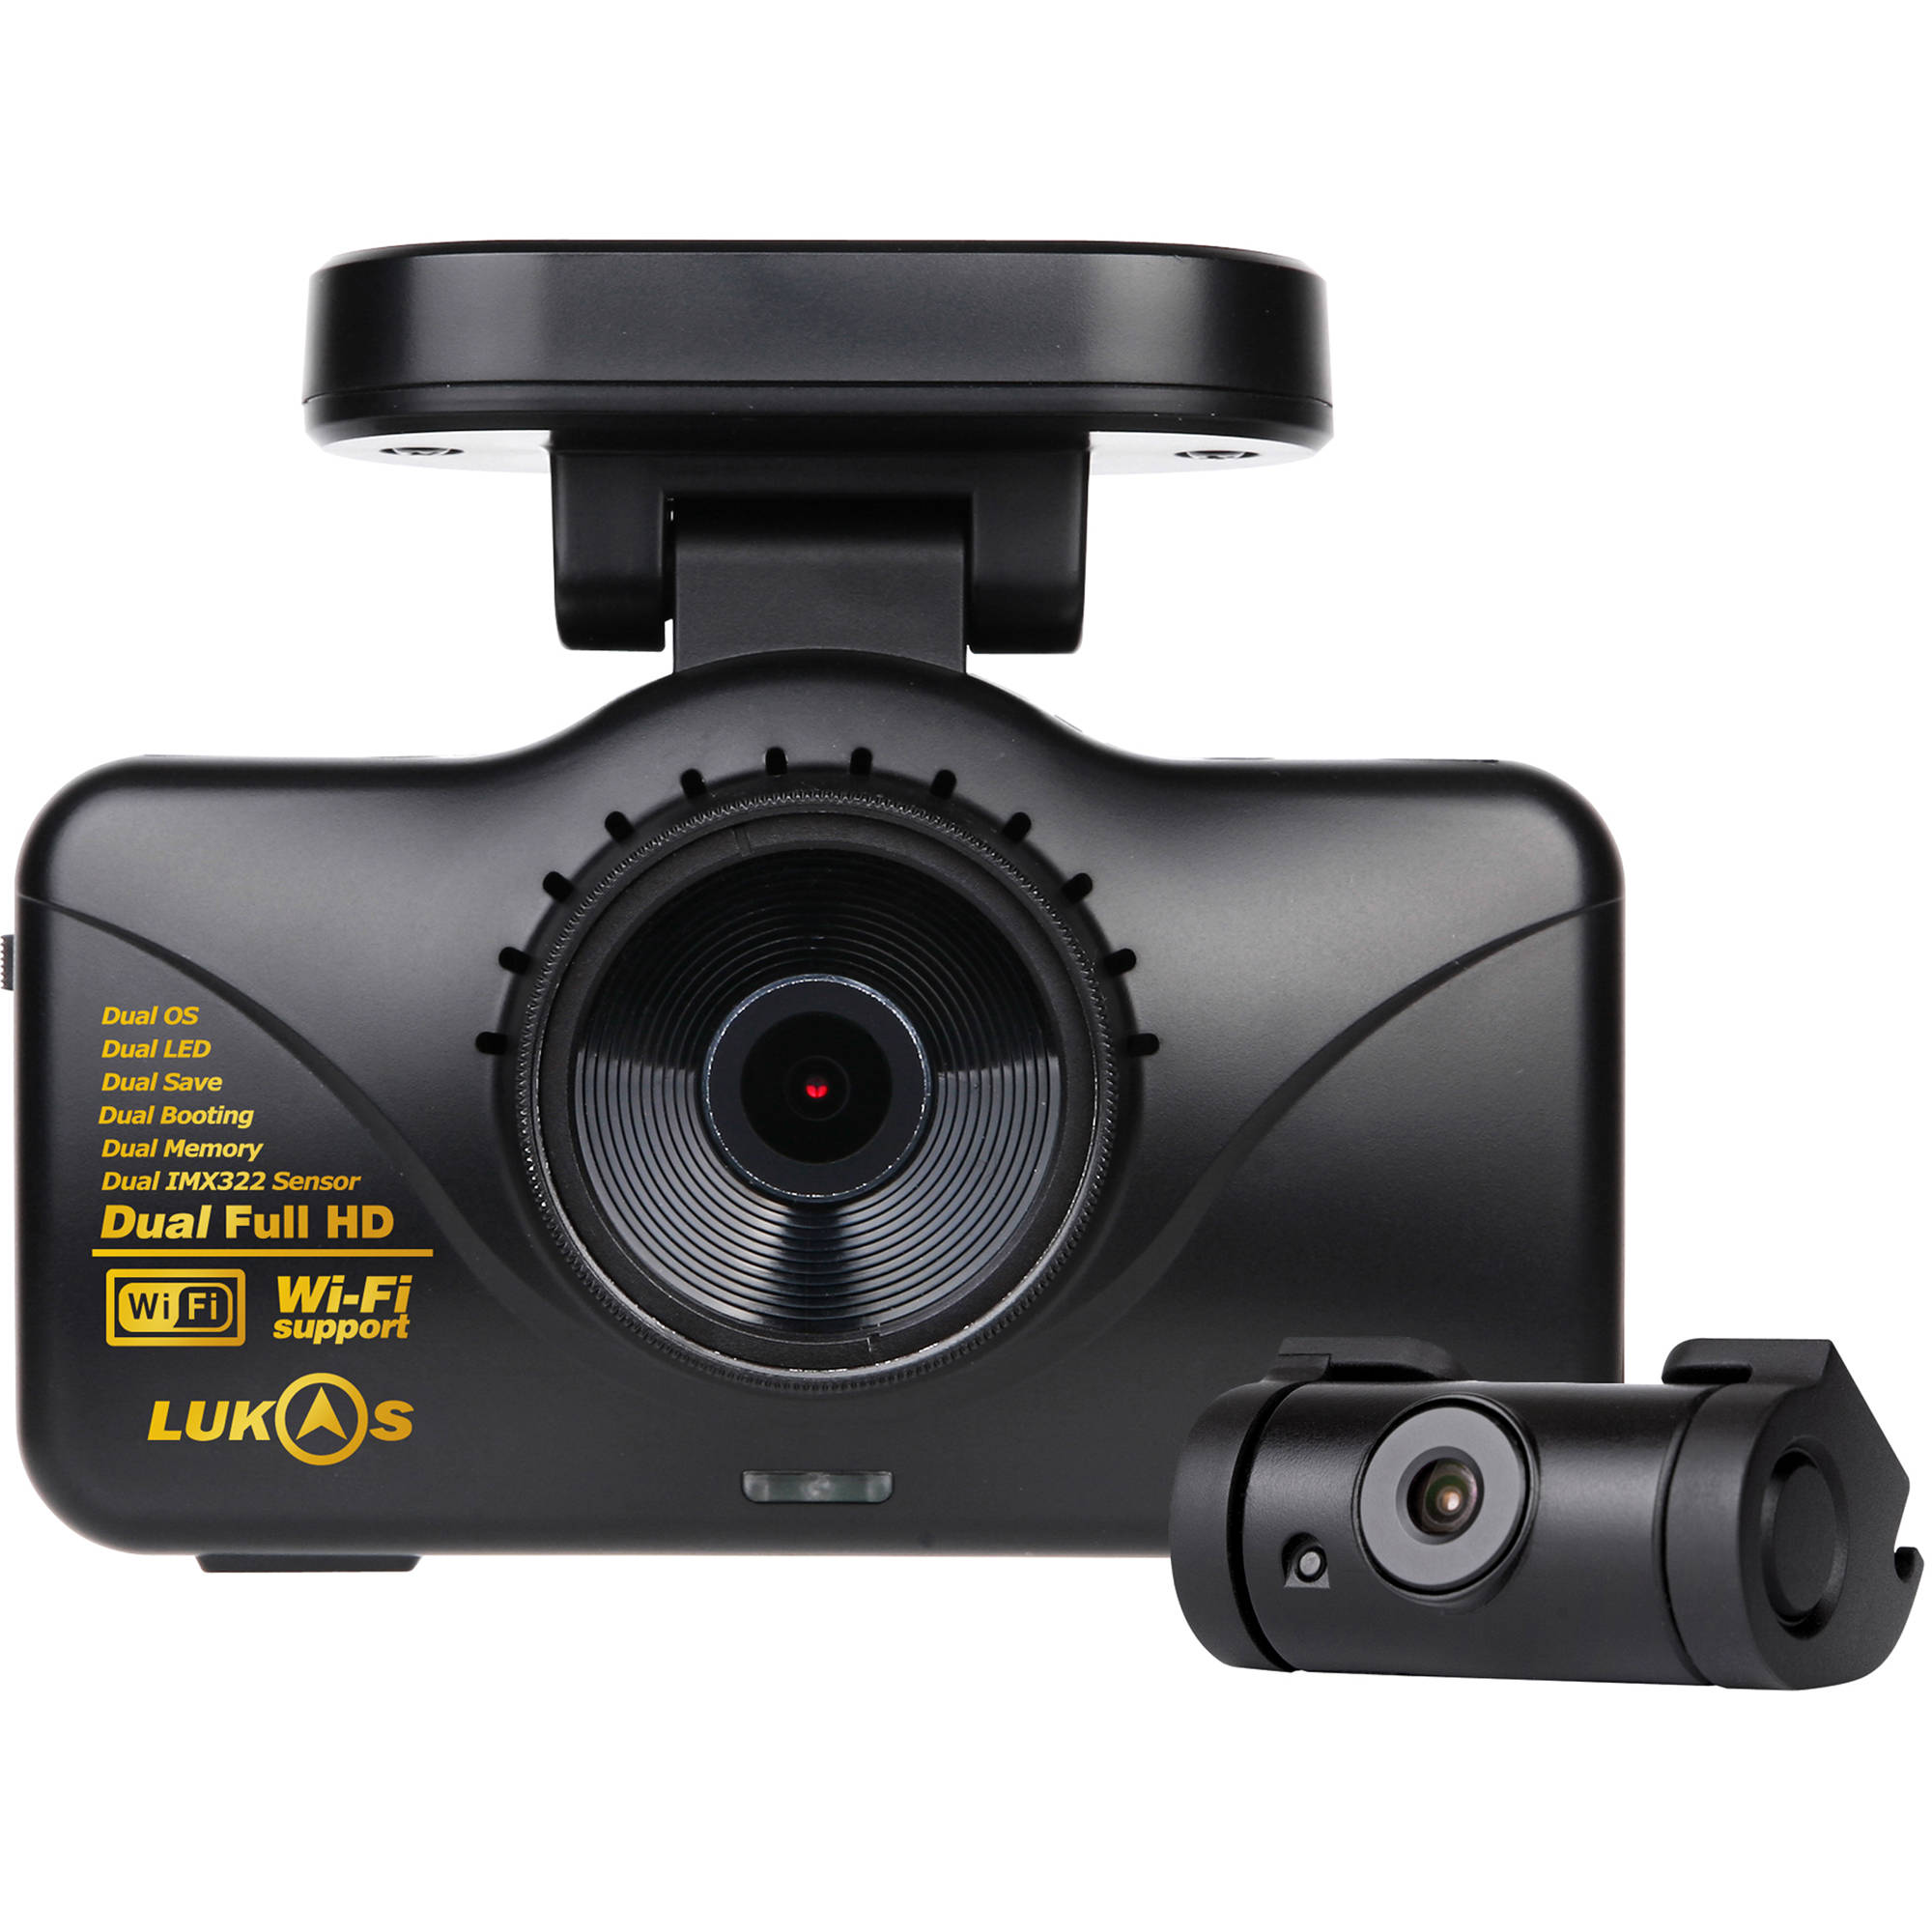 lukas 1080p wi fi front and rear dash camera with gps lk 7950g. Black Bedroom Furniture Sets. Home Design Ideas